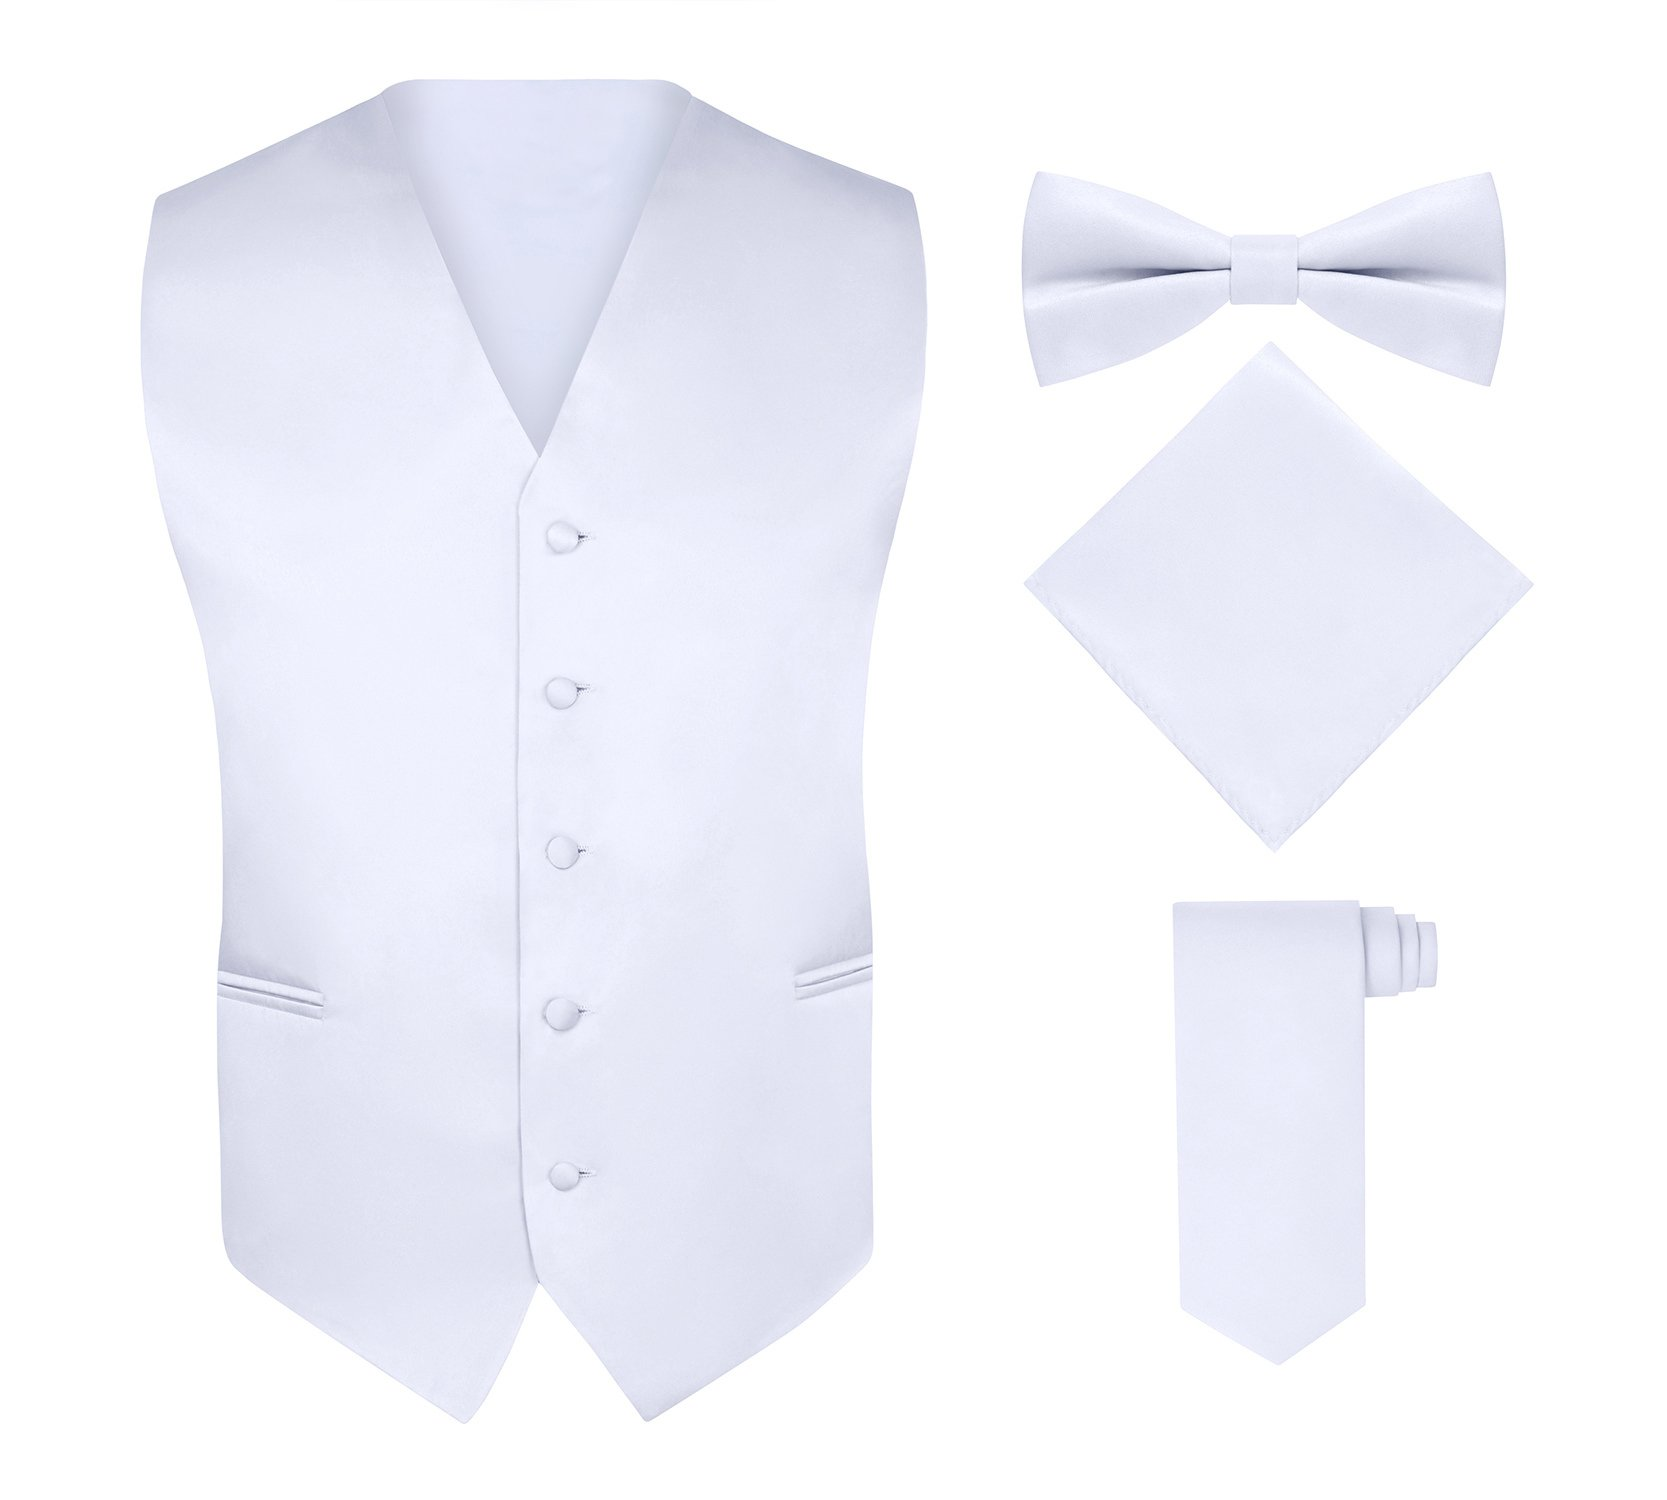 S.H. Churchill & Co. Men's 4 Piece Vest Set, With Bow Tie, Neck Tie & Pocket Hankie - White, M